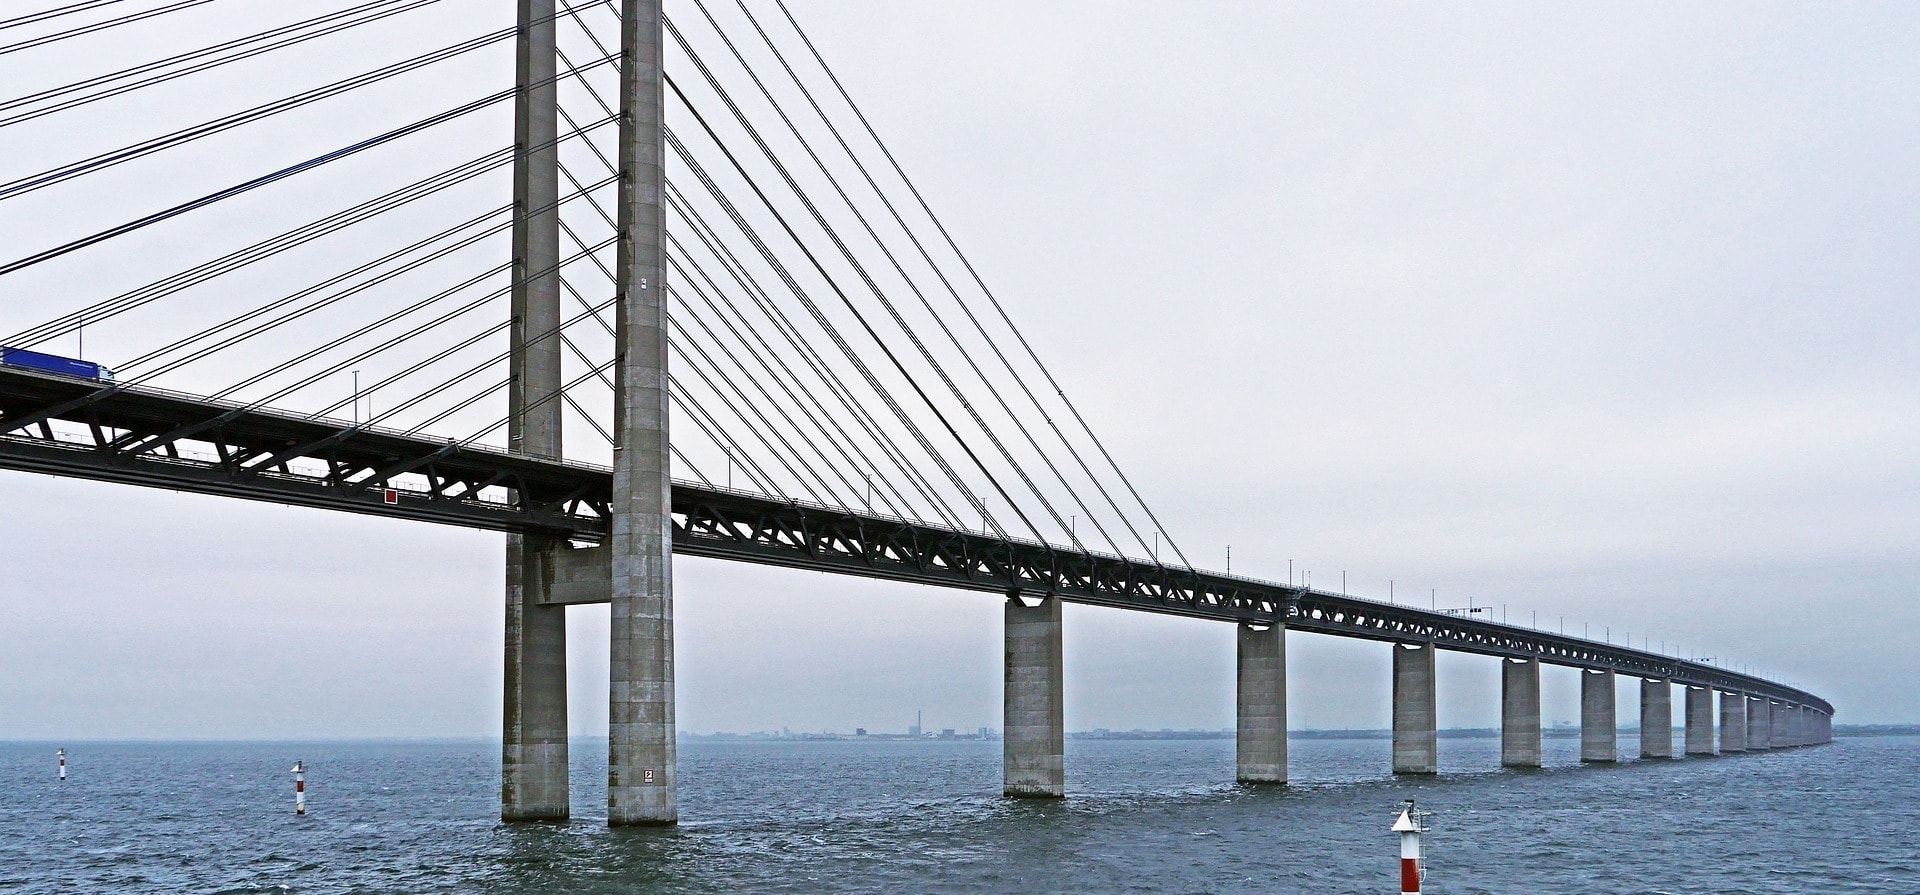 The Øresund bridge is a cable-stayed bridge with a total length of 7,845 meters and a main span of 490 meters.